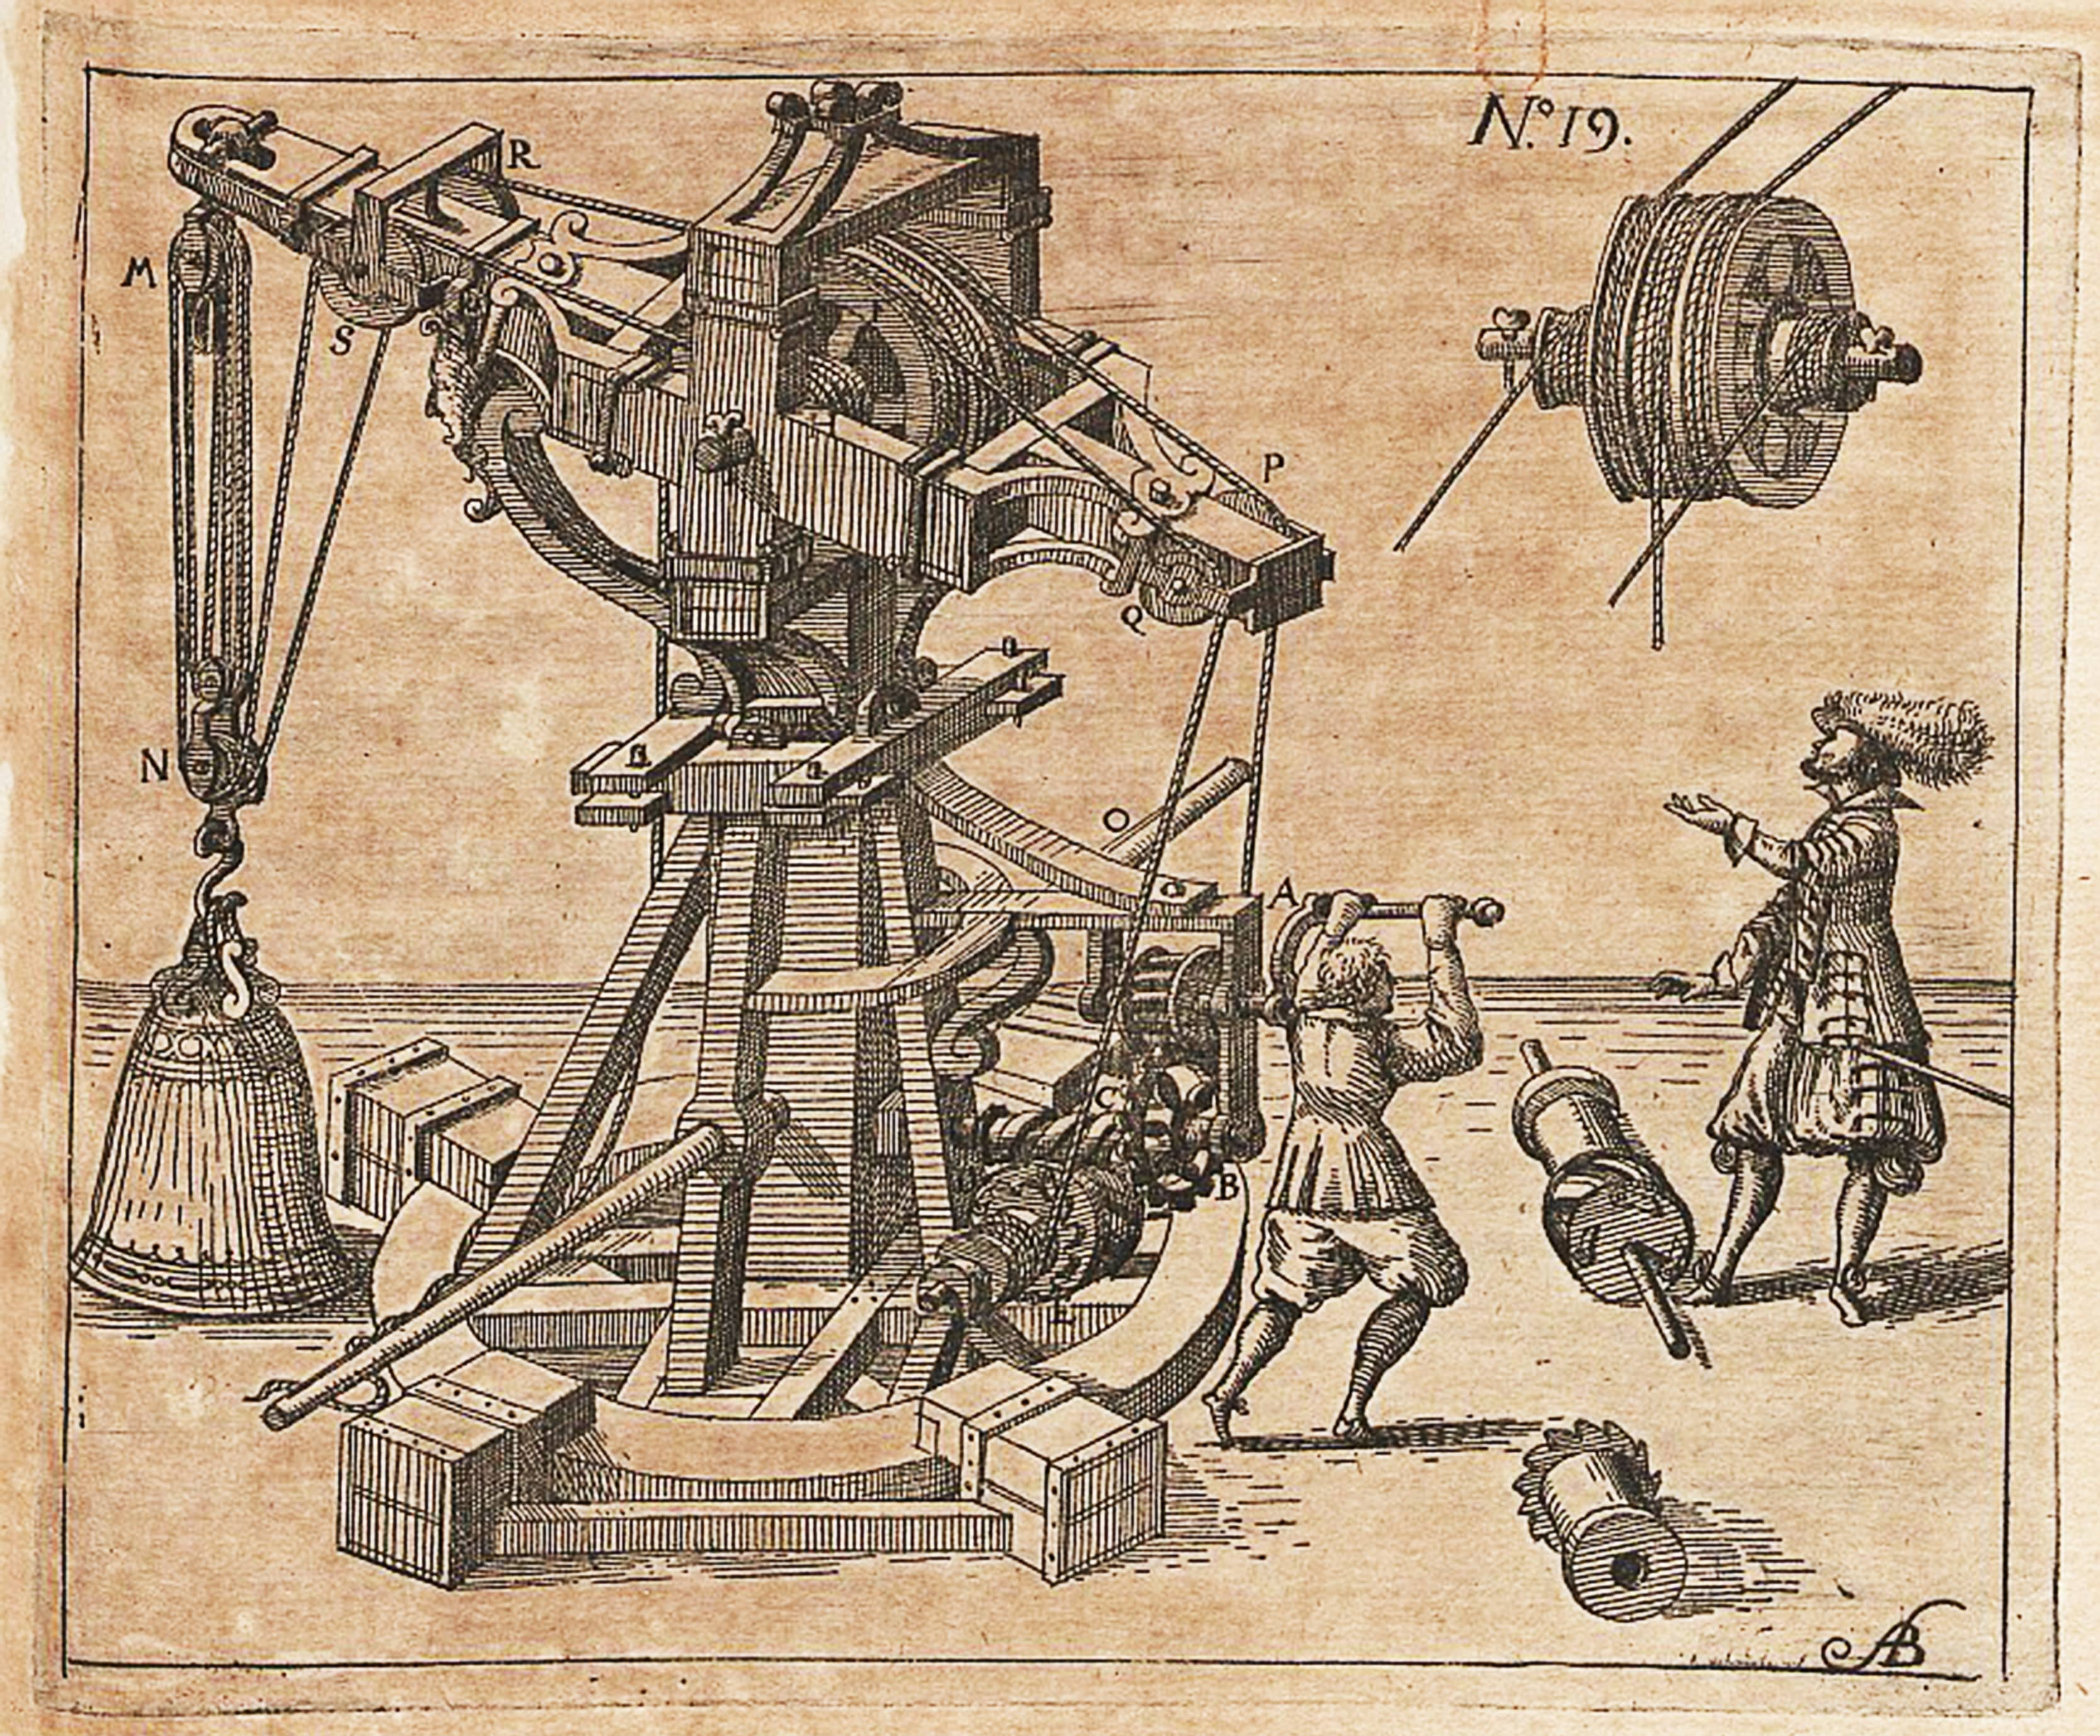 The world is reduced to physical components in mechanical philosophy. Illustration: Hieronymus Megiser, 1613